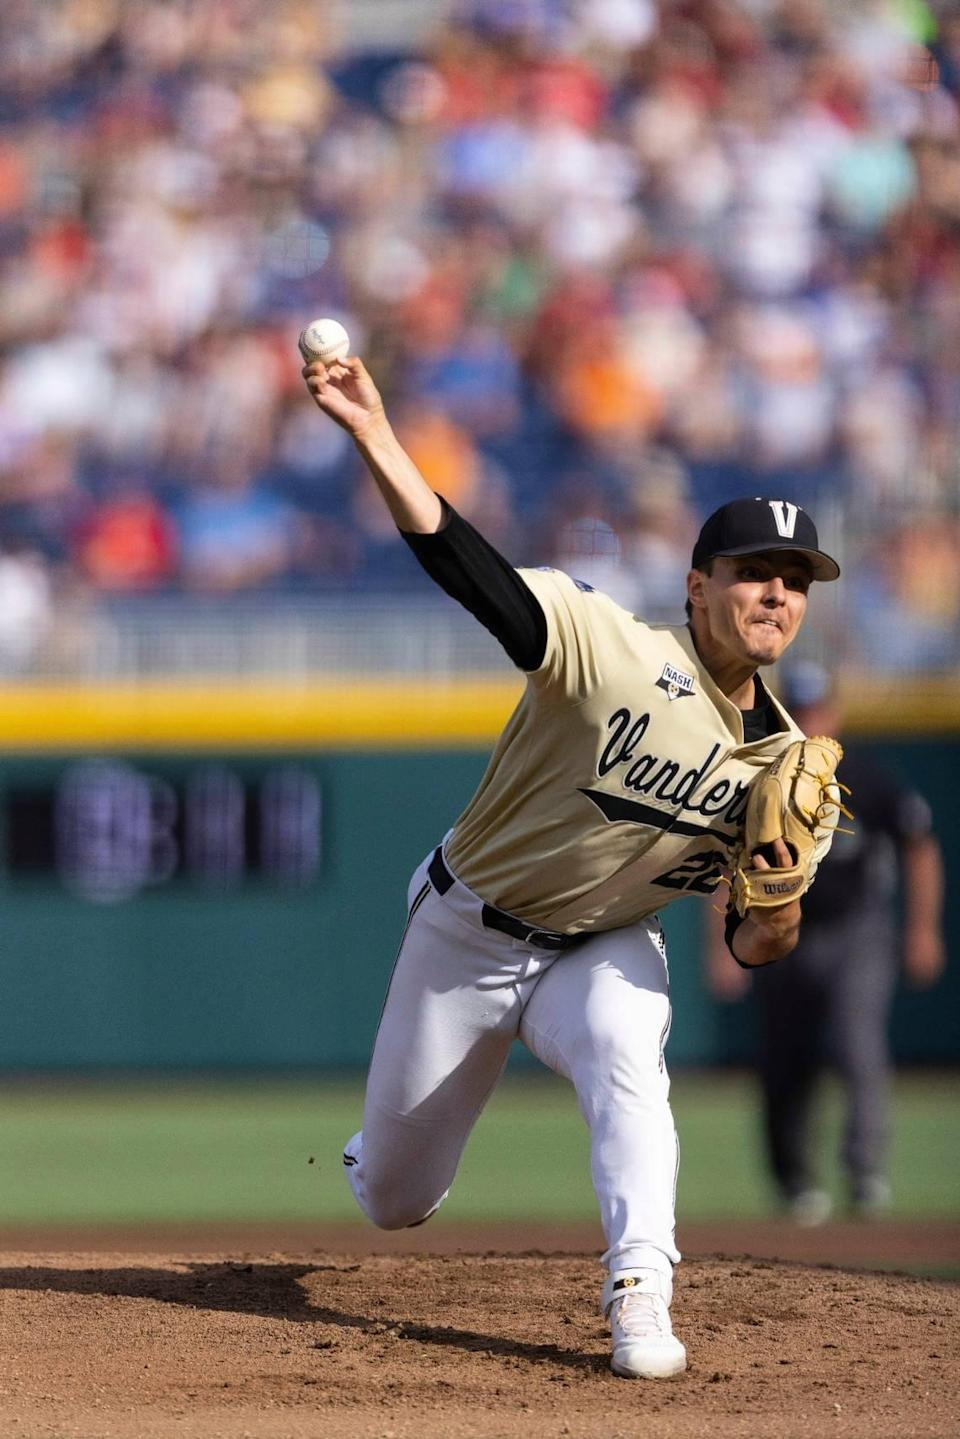 Vanderbilt starting pitcher Jack Leiter throws against North Carolina State in the first inning during a baseball game in the College World Series, Monday, June 21, 2021, at TD Ameritrade Park in Omaha, Neb. (AP Photo/Rebecca S. Gratz)